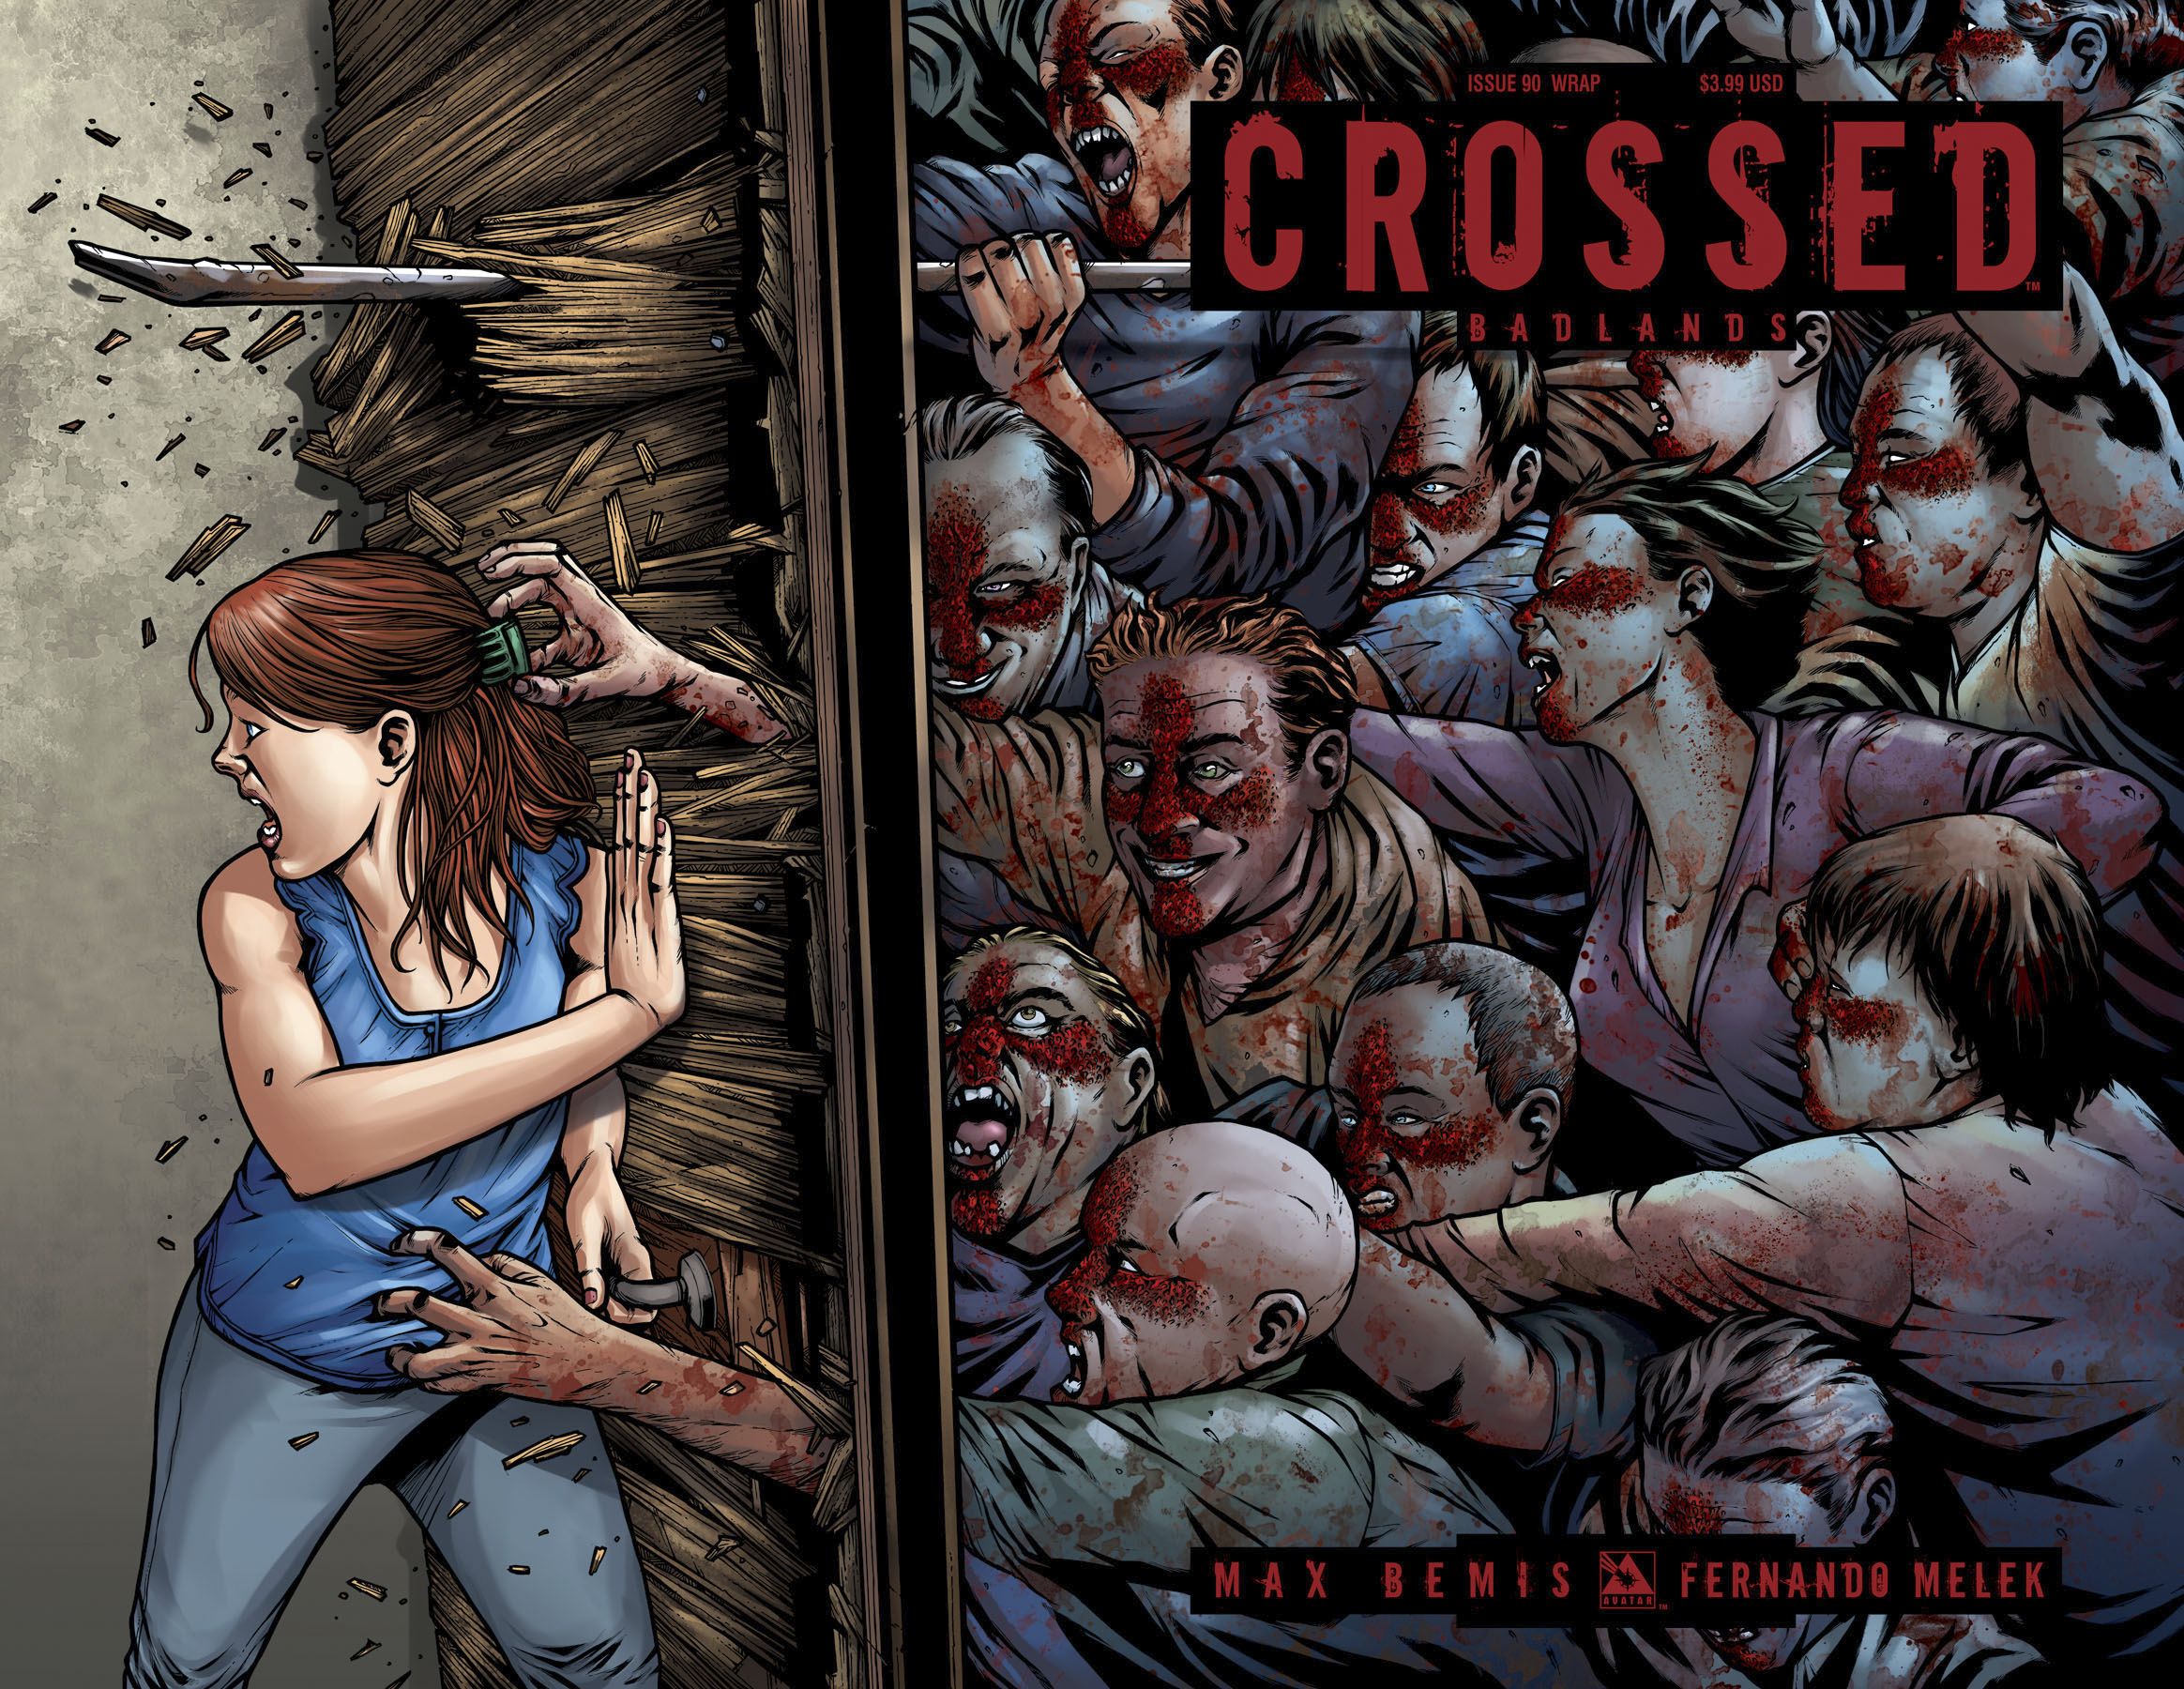 CROSSED BADLANDS #90 WRAP CVR (MR)